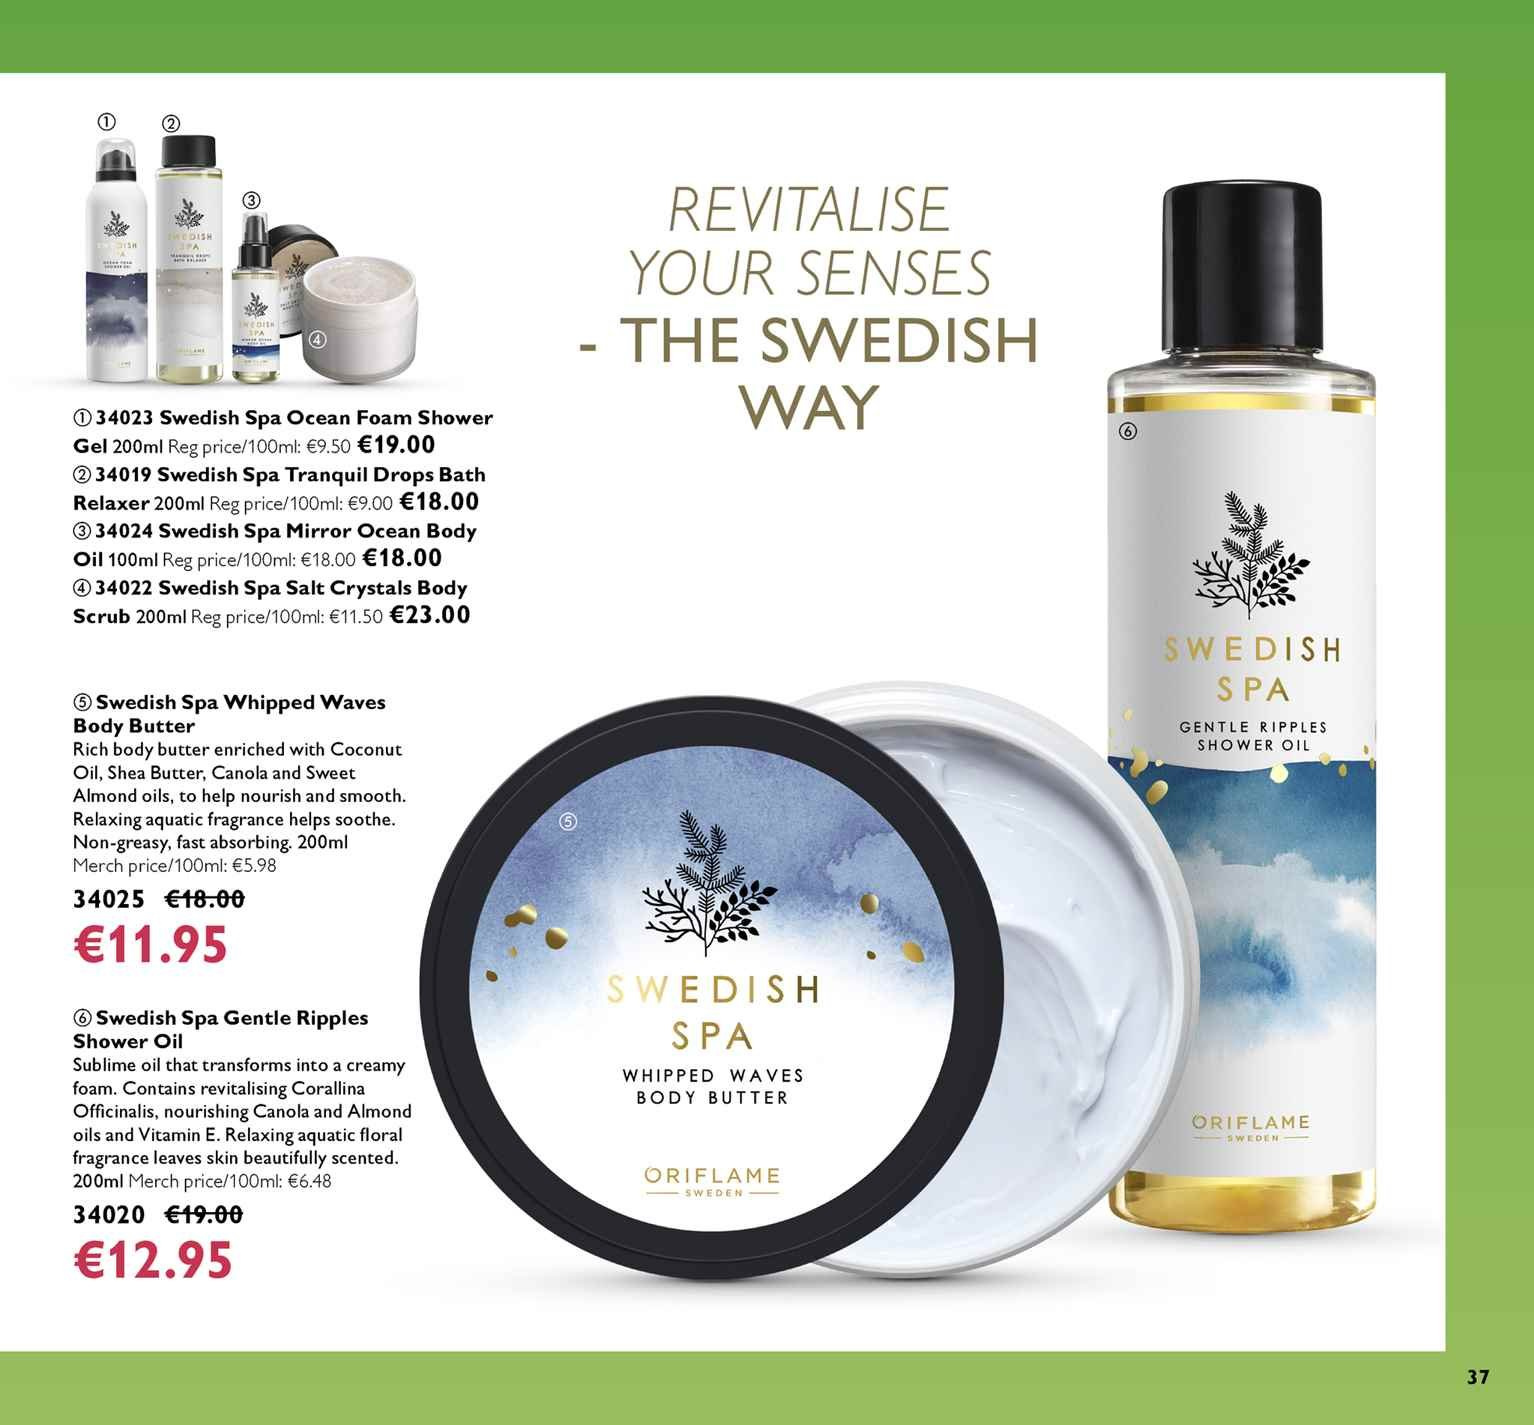 8778638f44d Oriflame offer - 22.3.2019 - 11.4.2019 - Sales products - bath,